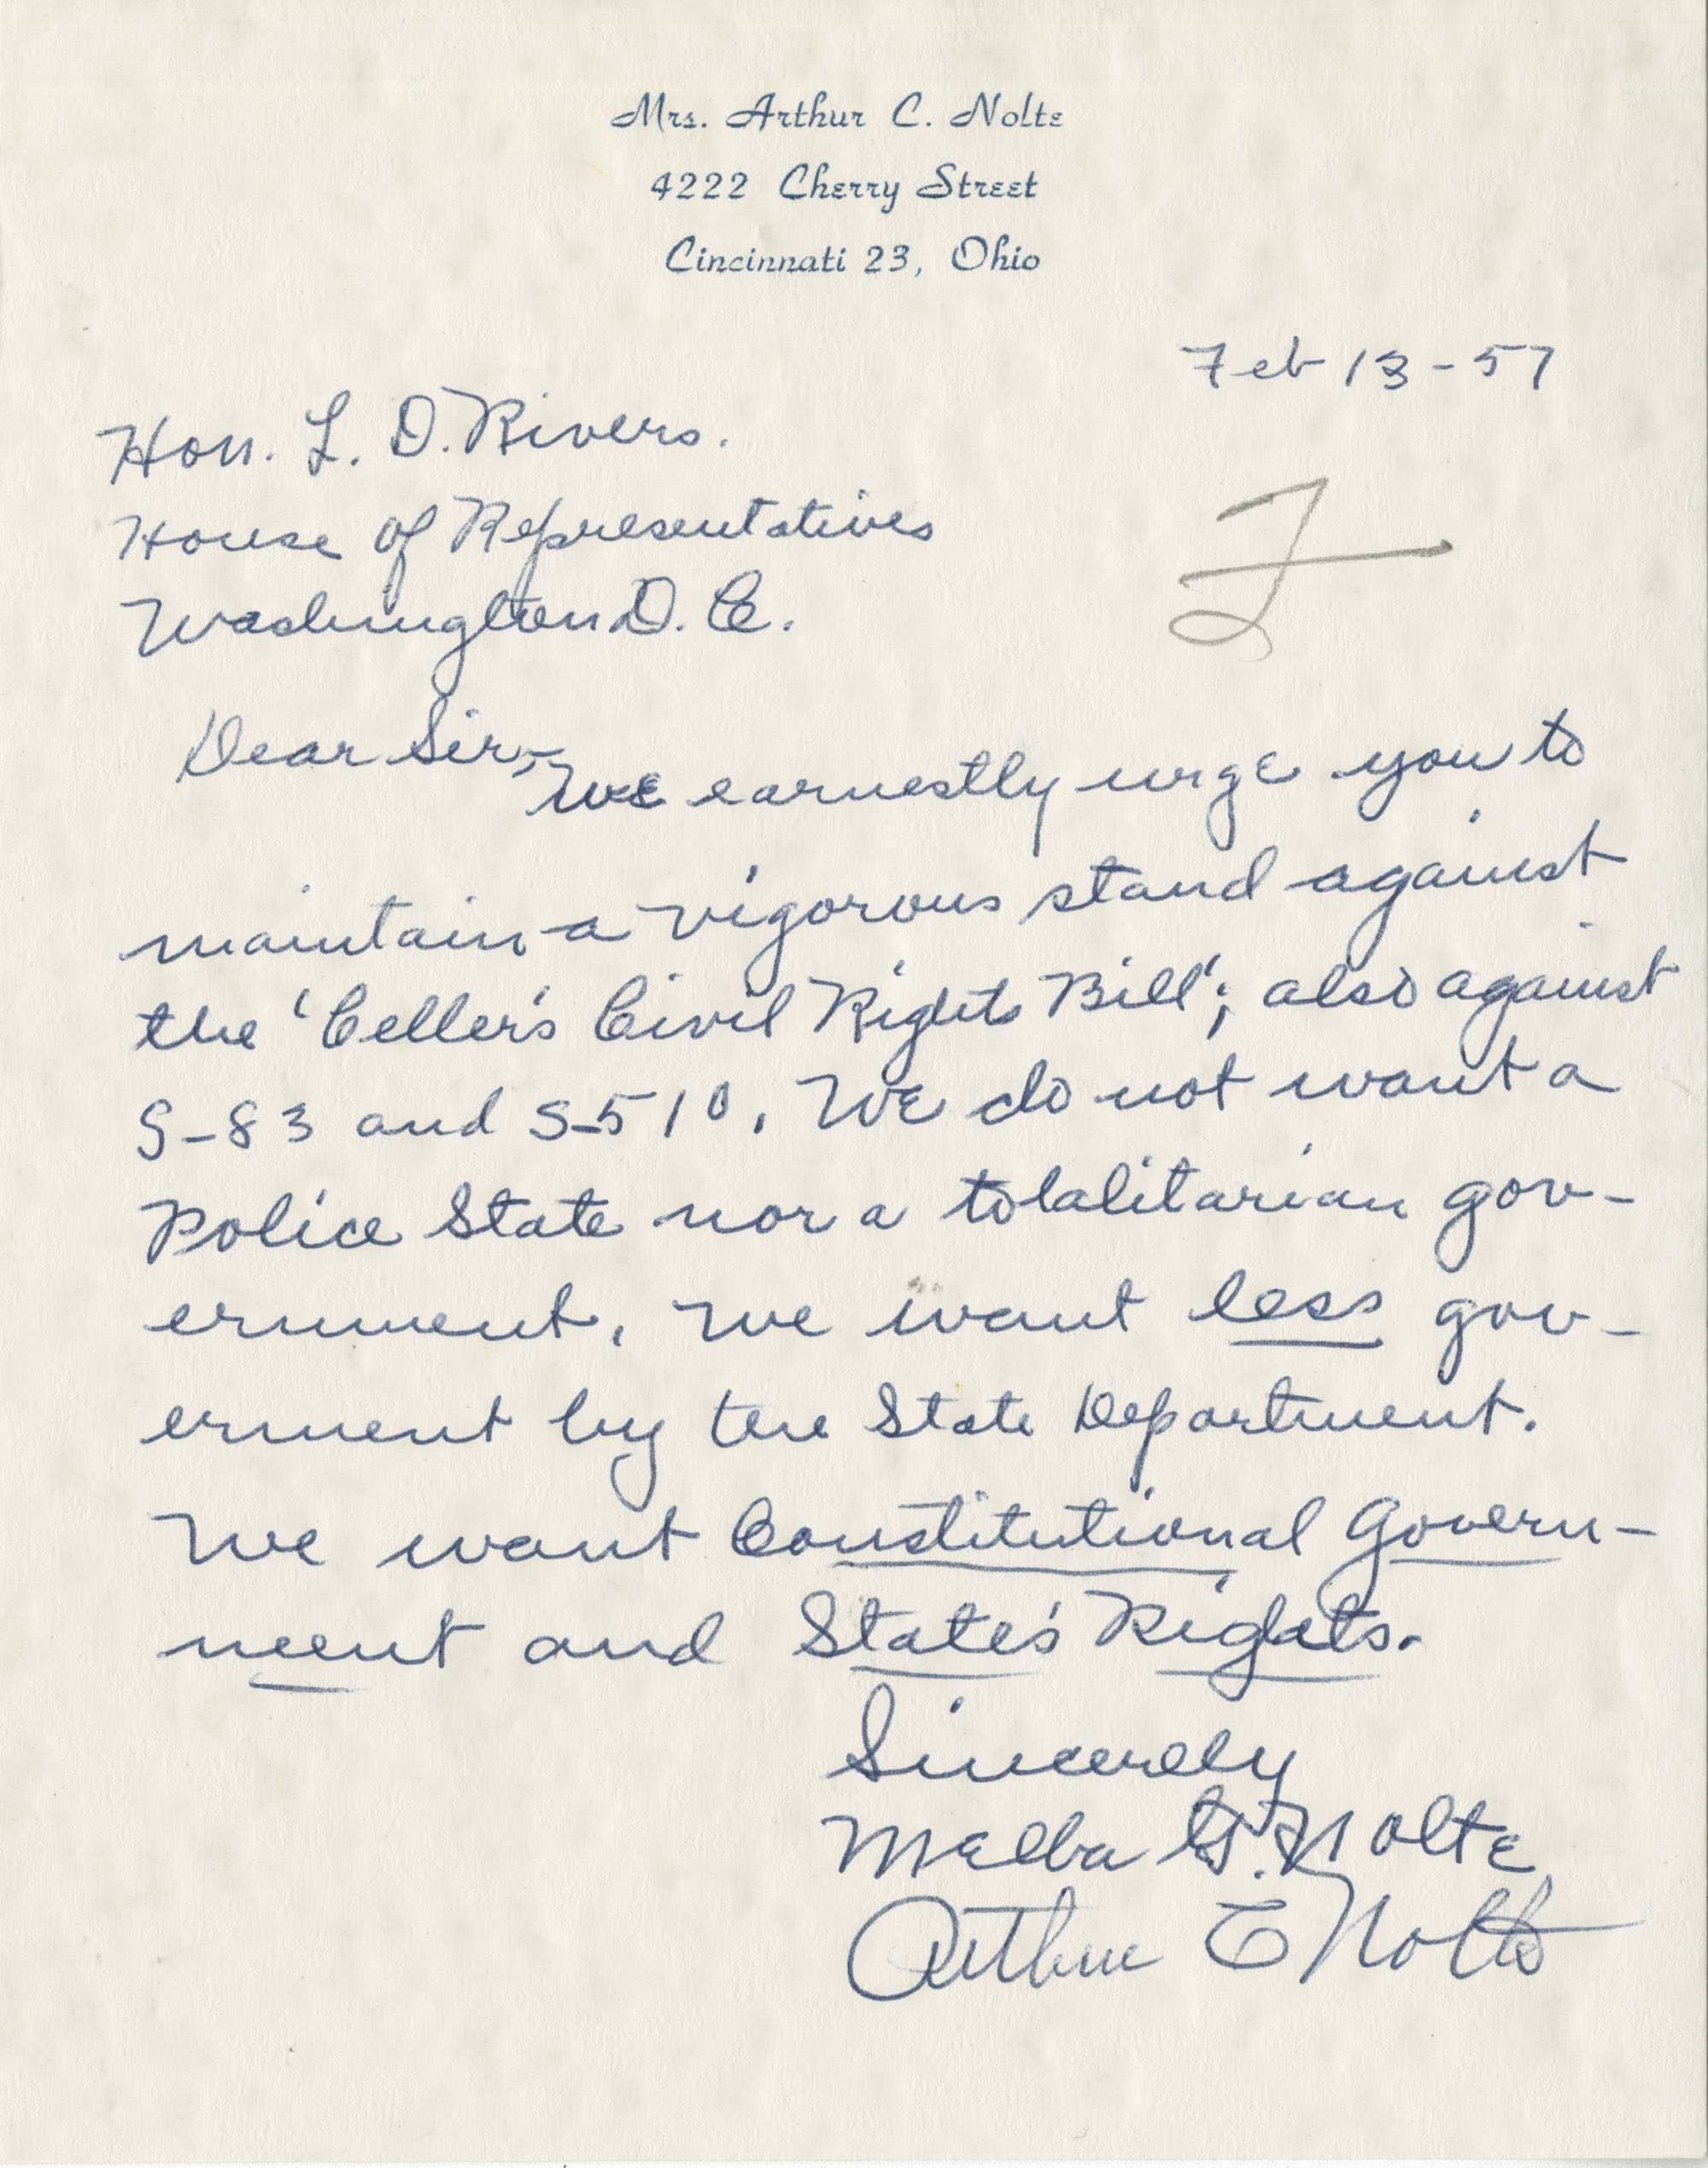 Letter from Mr. and Mrs. Nolte to Representative L. Mendel Rivers, Feburary 13, 1957